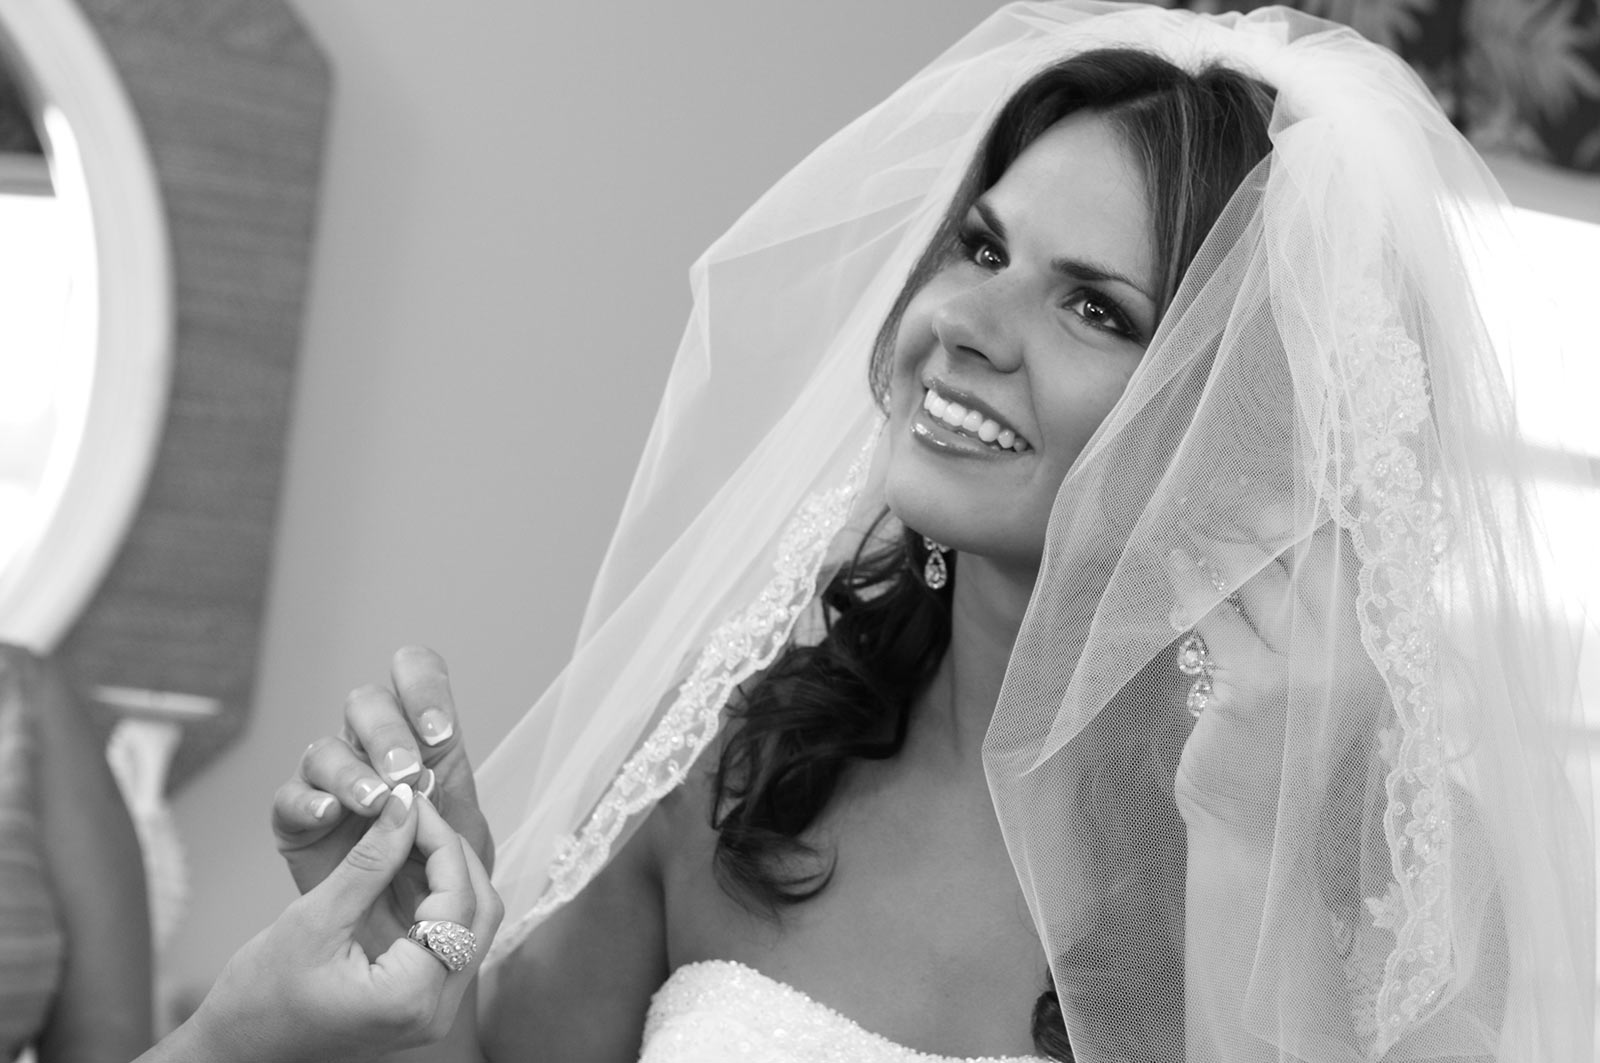 Bride Smiling - Getting Ready - Photo by J. Garcia